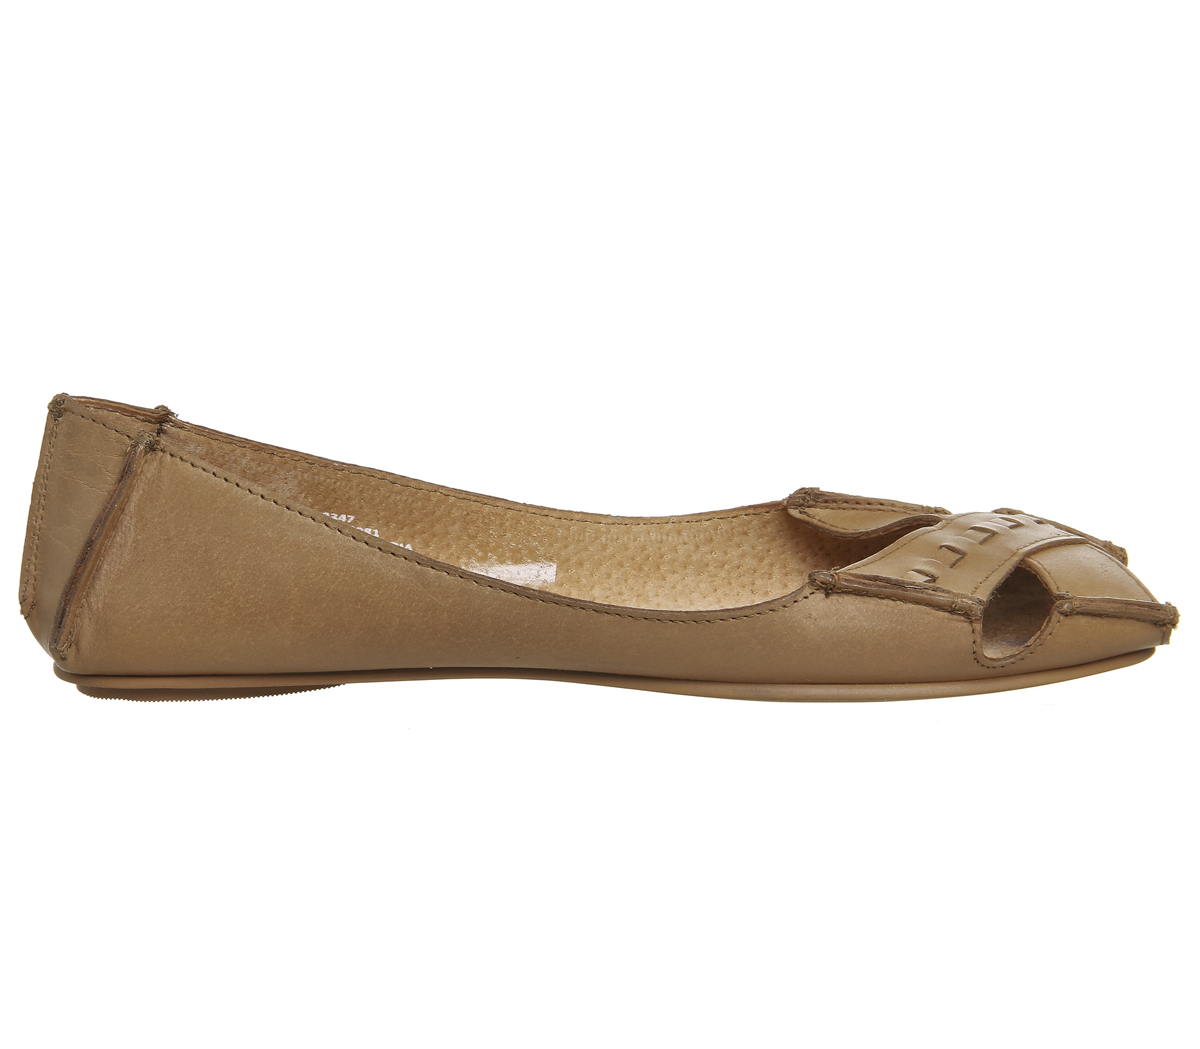 53287b313 Womens Office Face To Face Peep Toe Flats Tan Leather Flats | eBay